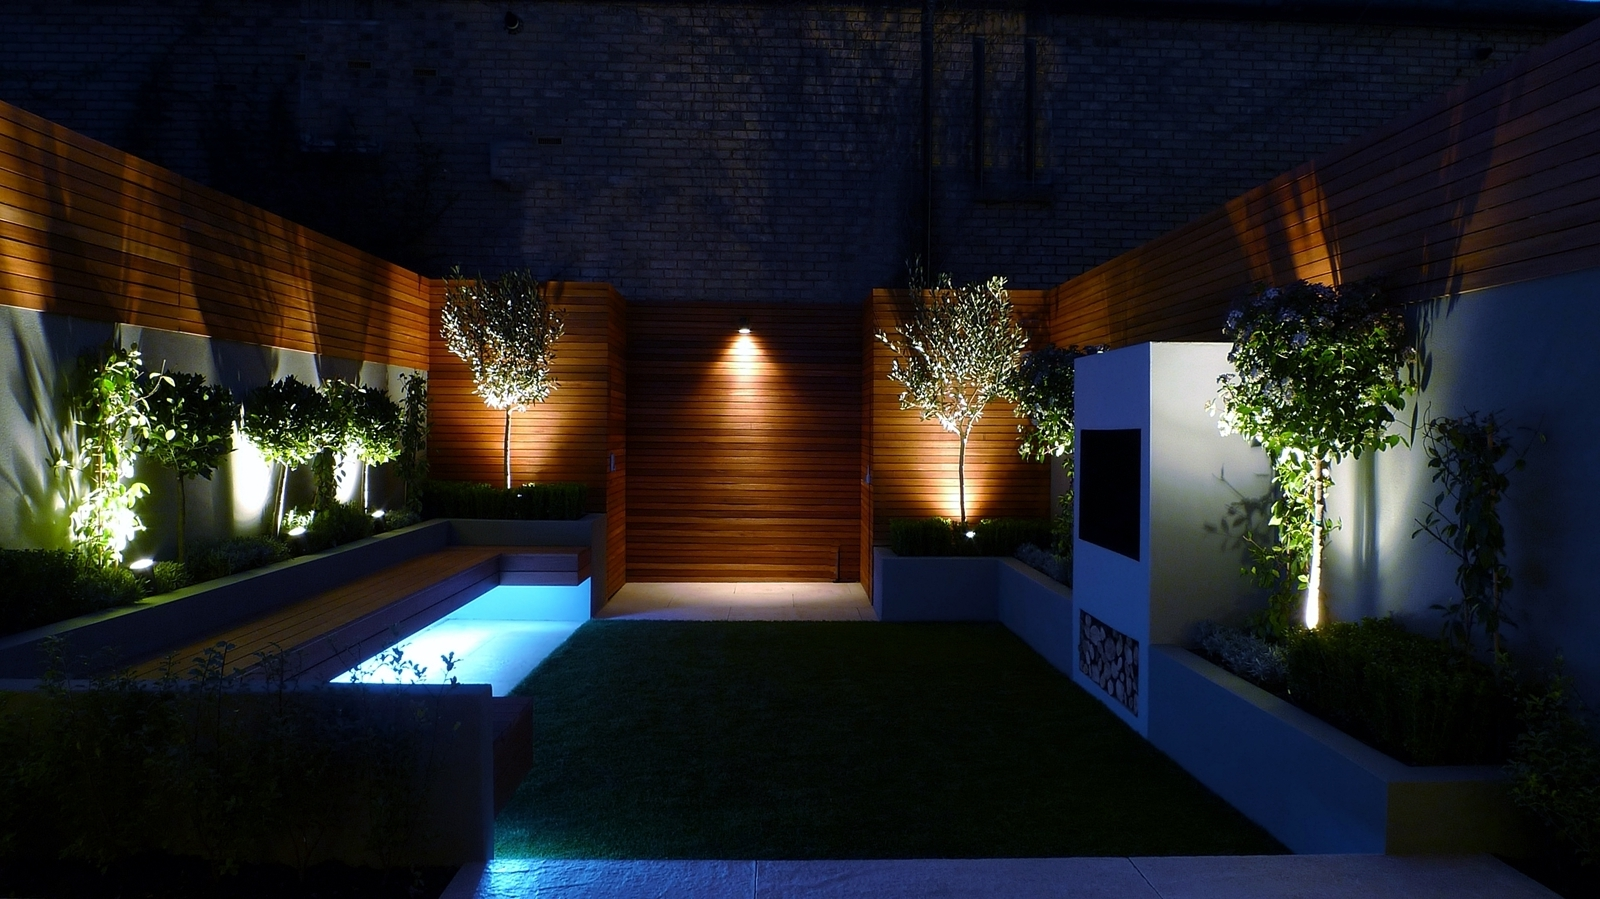 38 Innovative Outdoor Lighting Ideas For Your Garden With Best And Newest Contemporary Led Post Lights For Mini Garden (View 13 of 20)